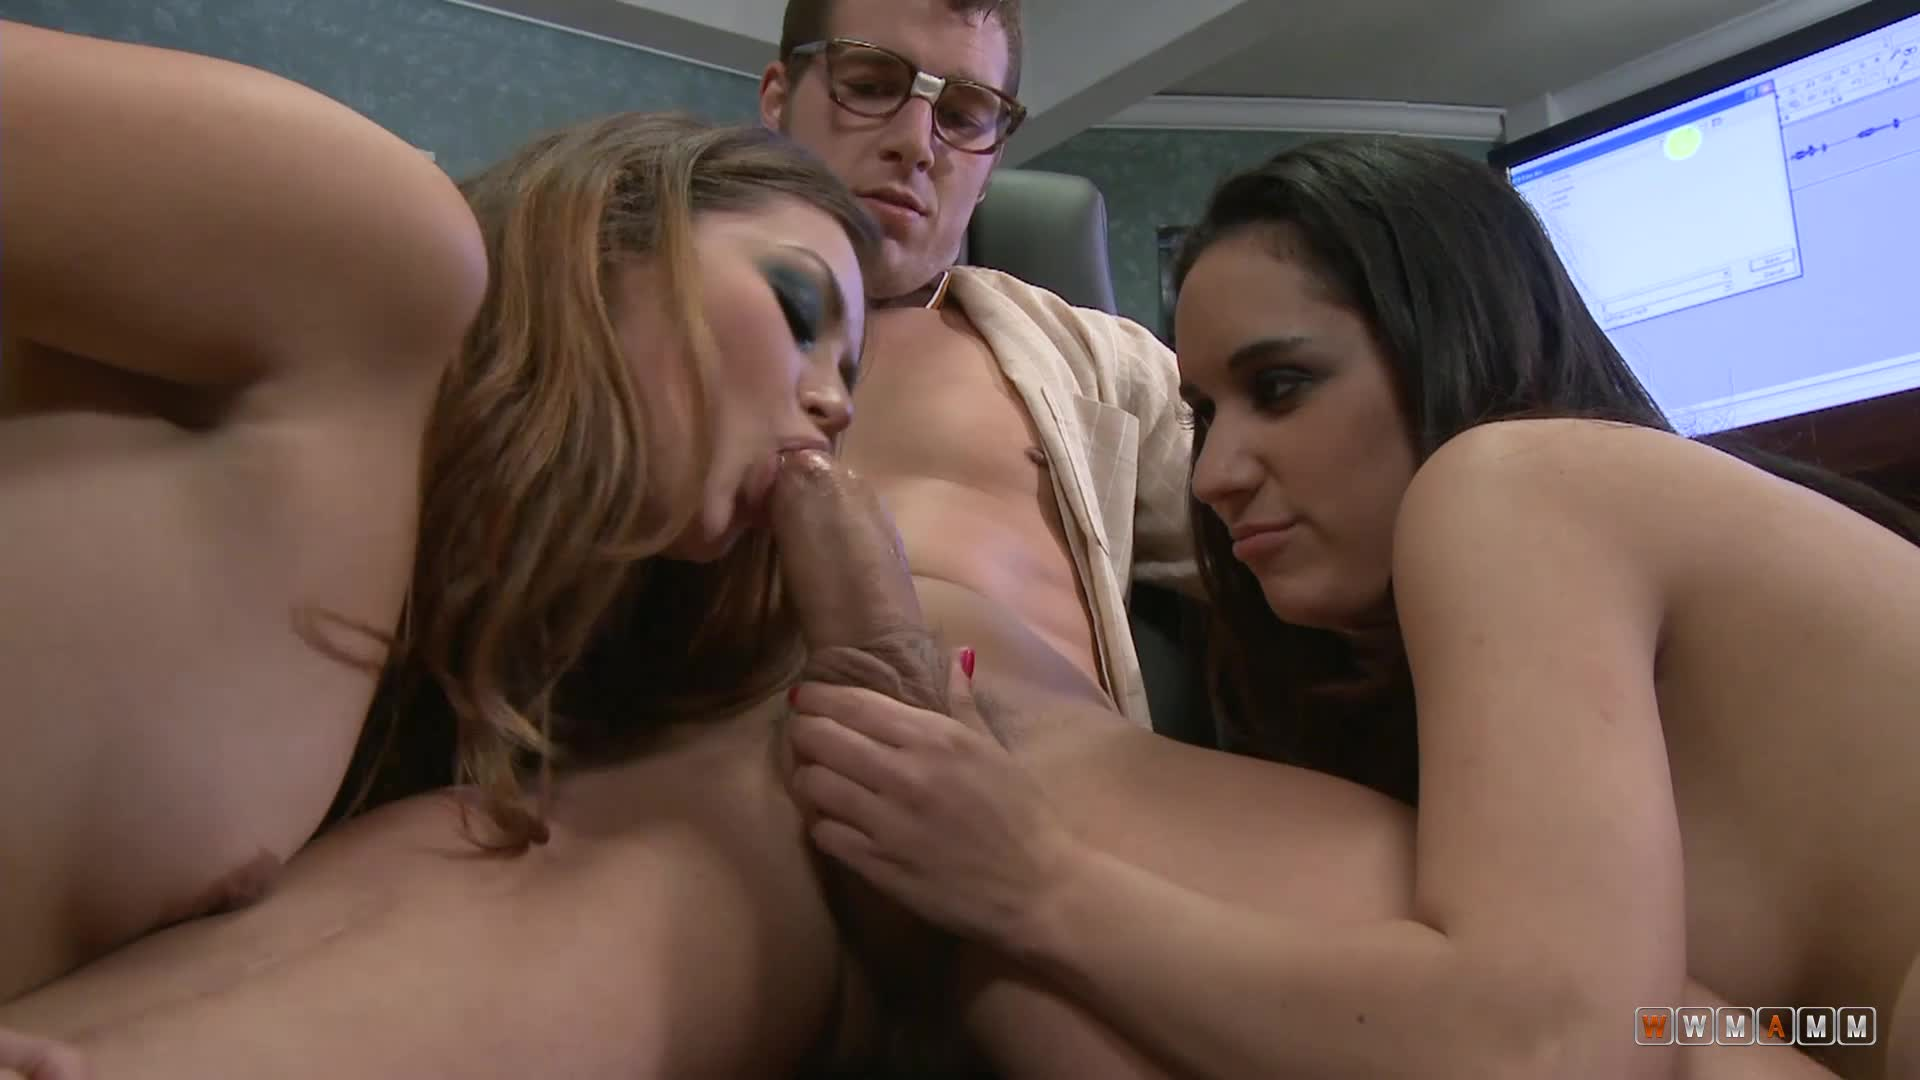 Two Naughty Babes Will Make One Guy His Best Day At The Office